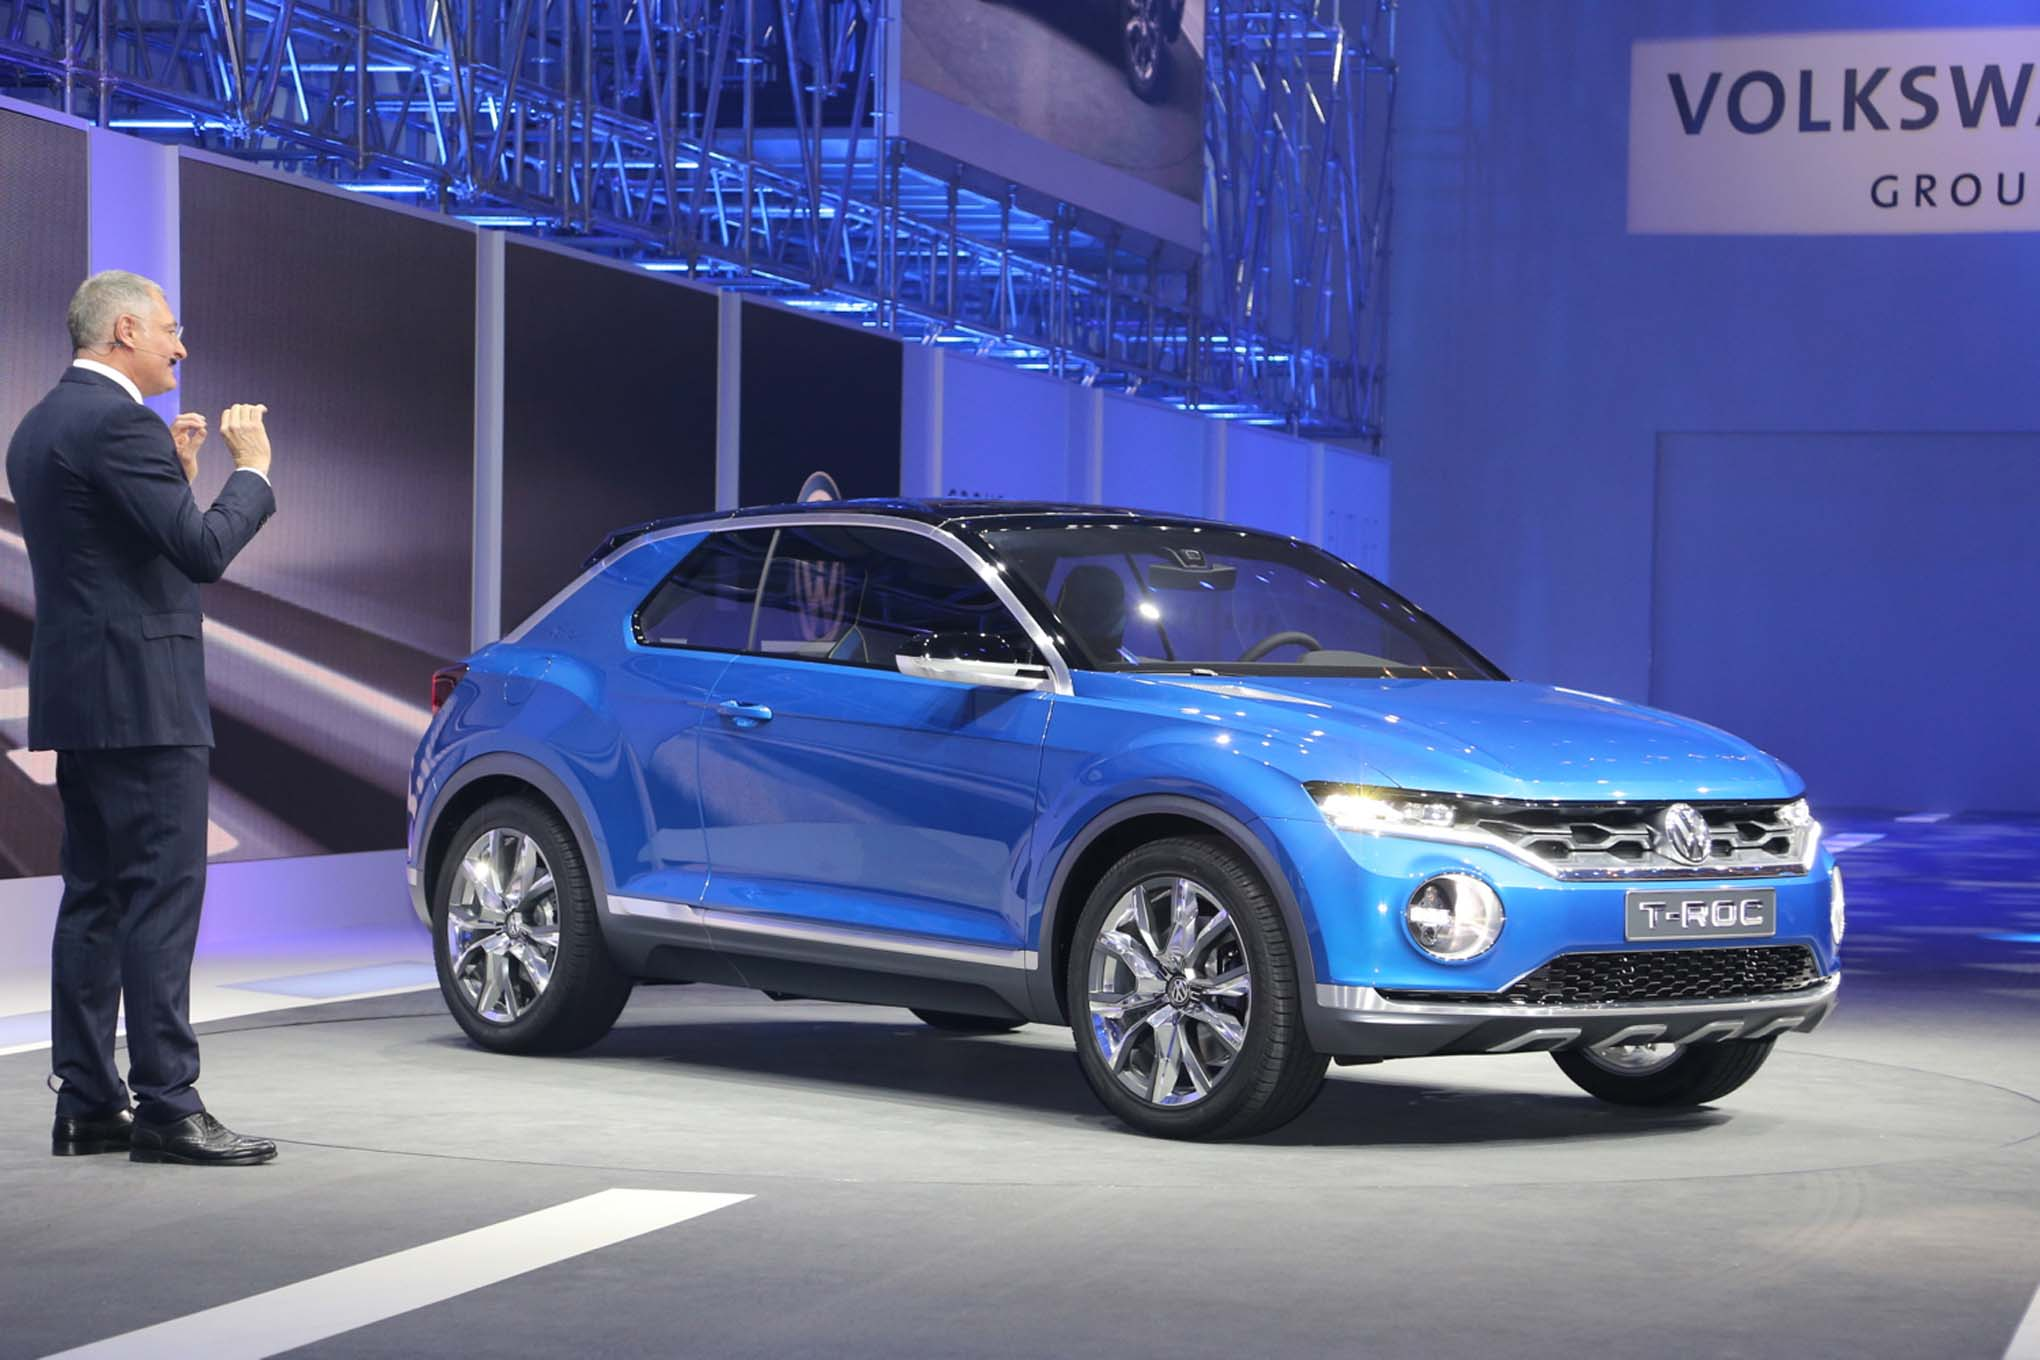 Volkswagen CEO Says T-ROC Concept Could be Built if Demand is Strong